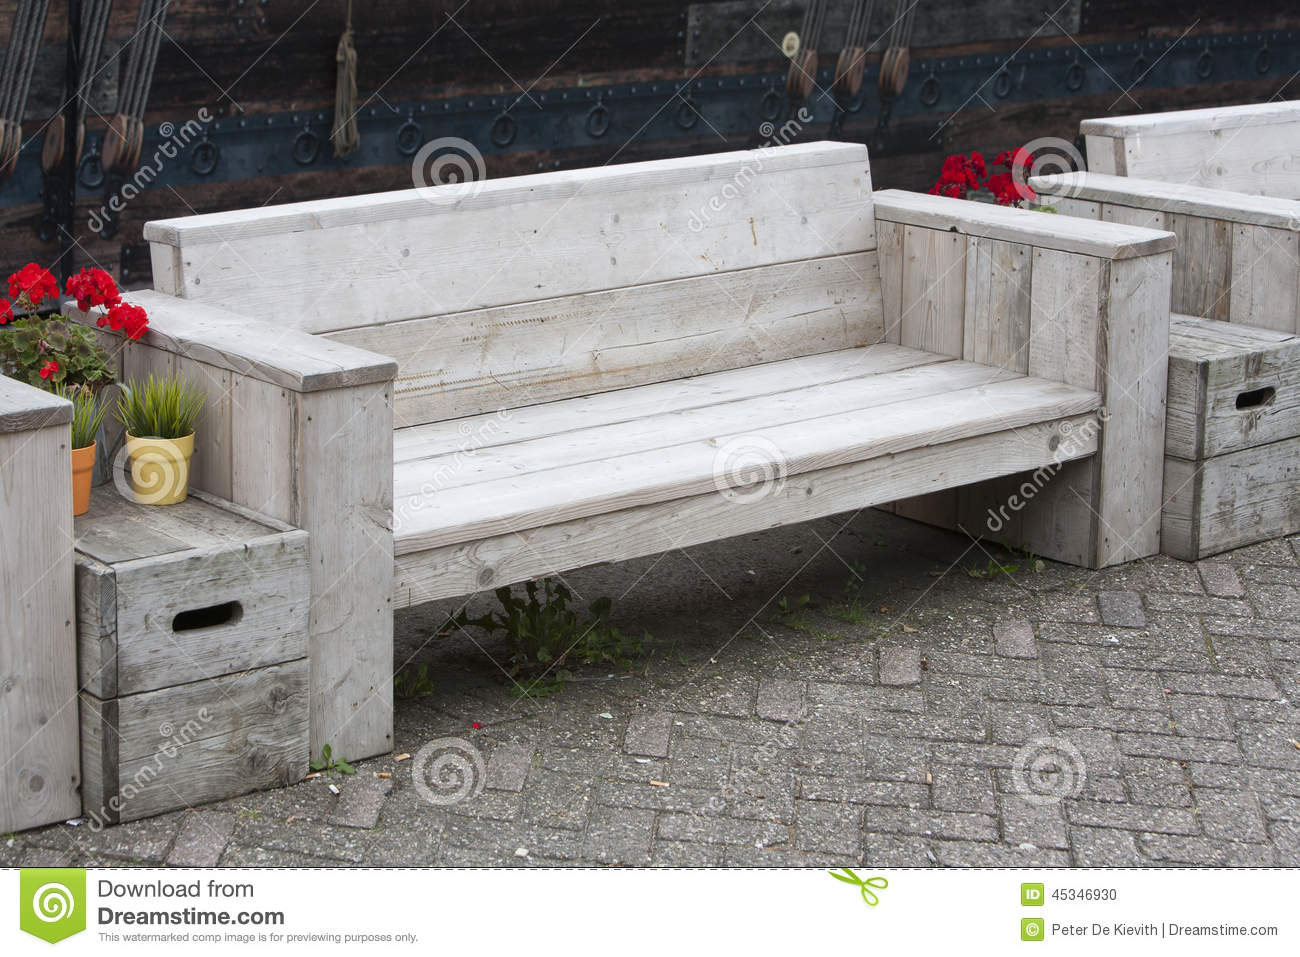 Garden Furniture Made From Scaffolding Planks wooden bench stock photo - image: 45346930